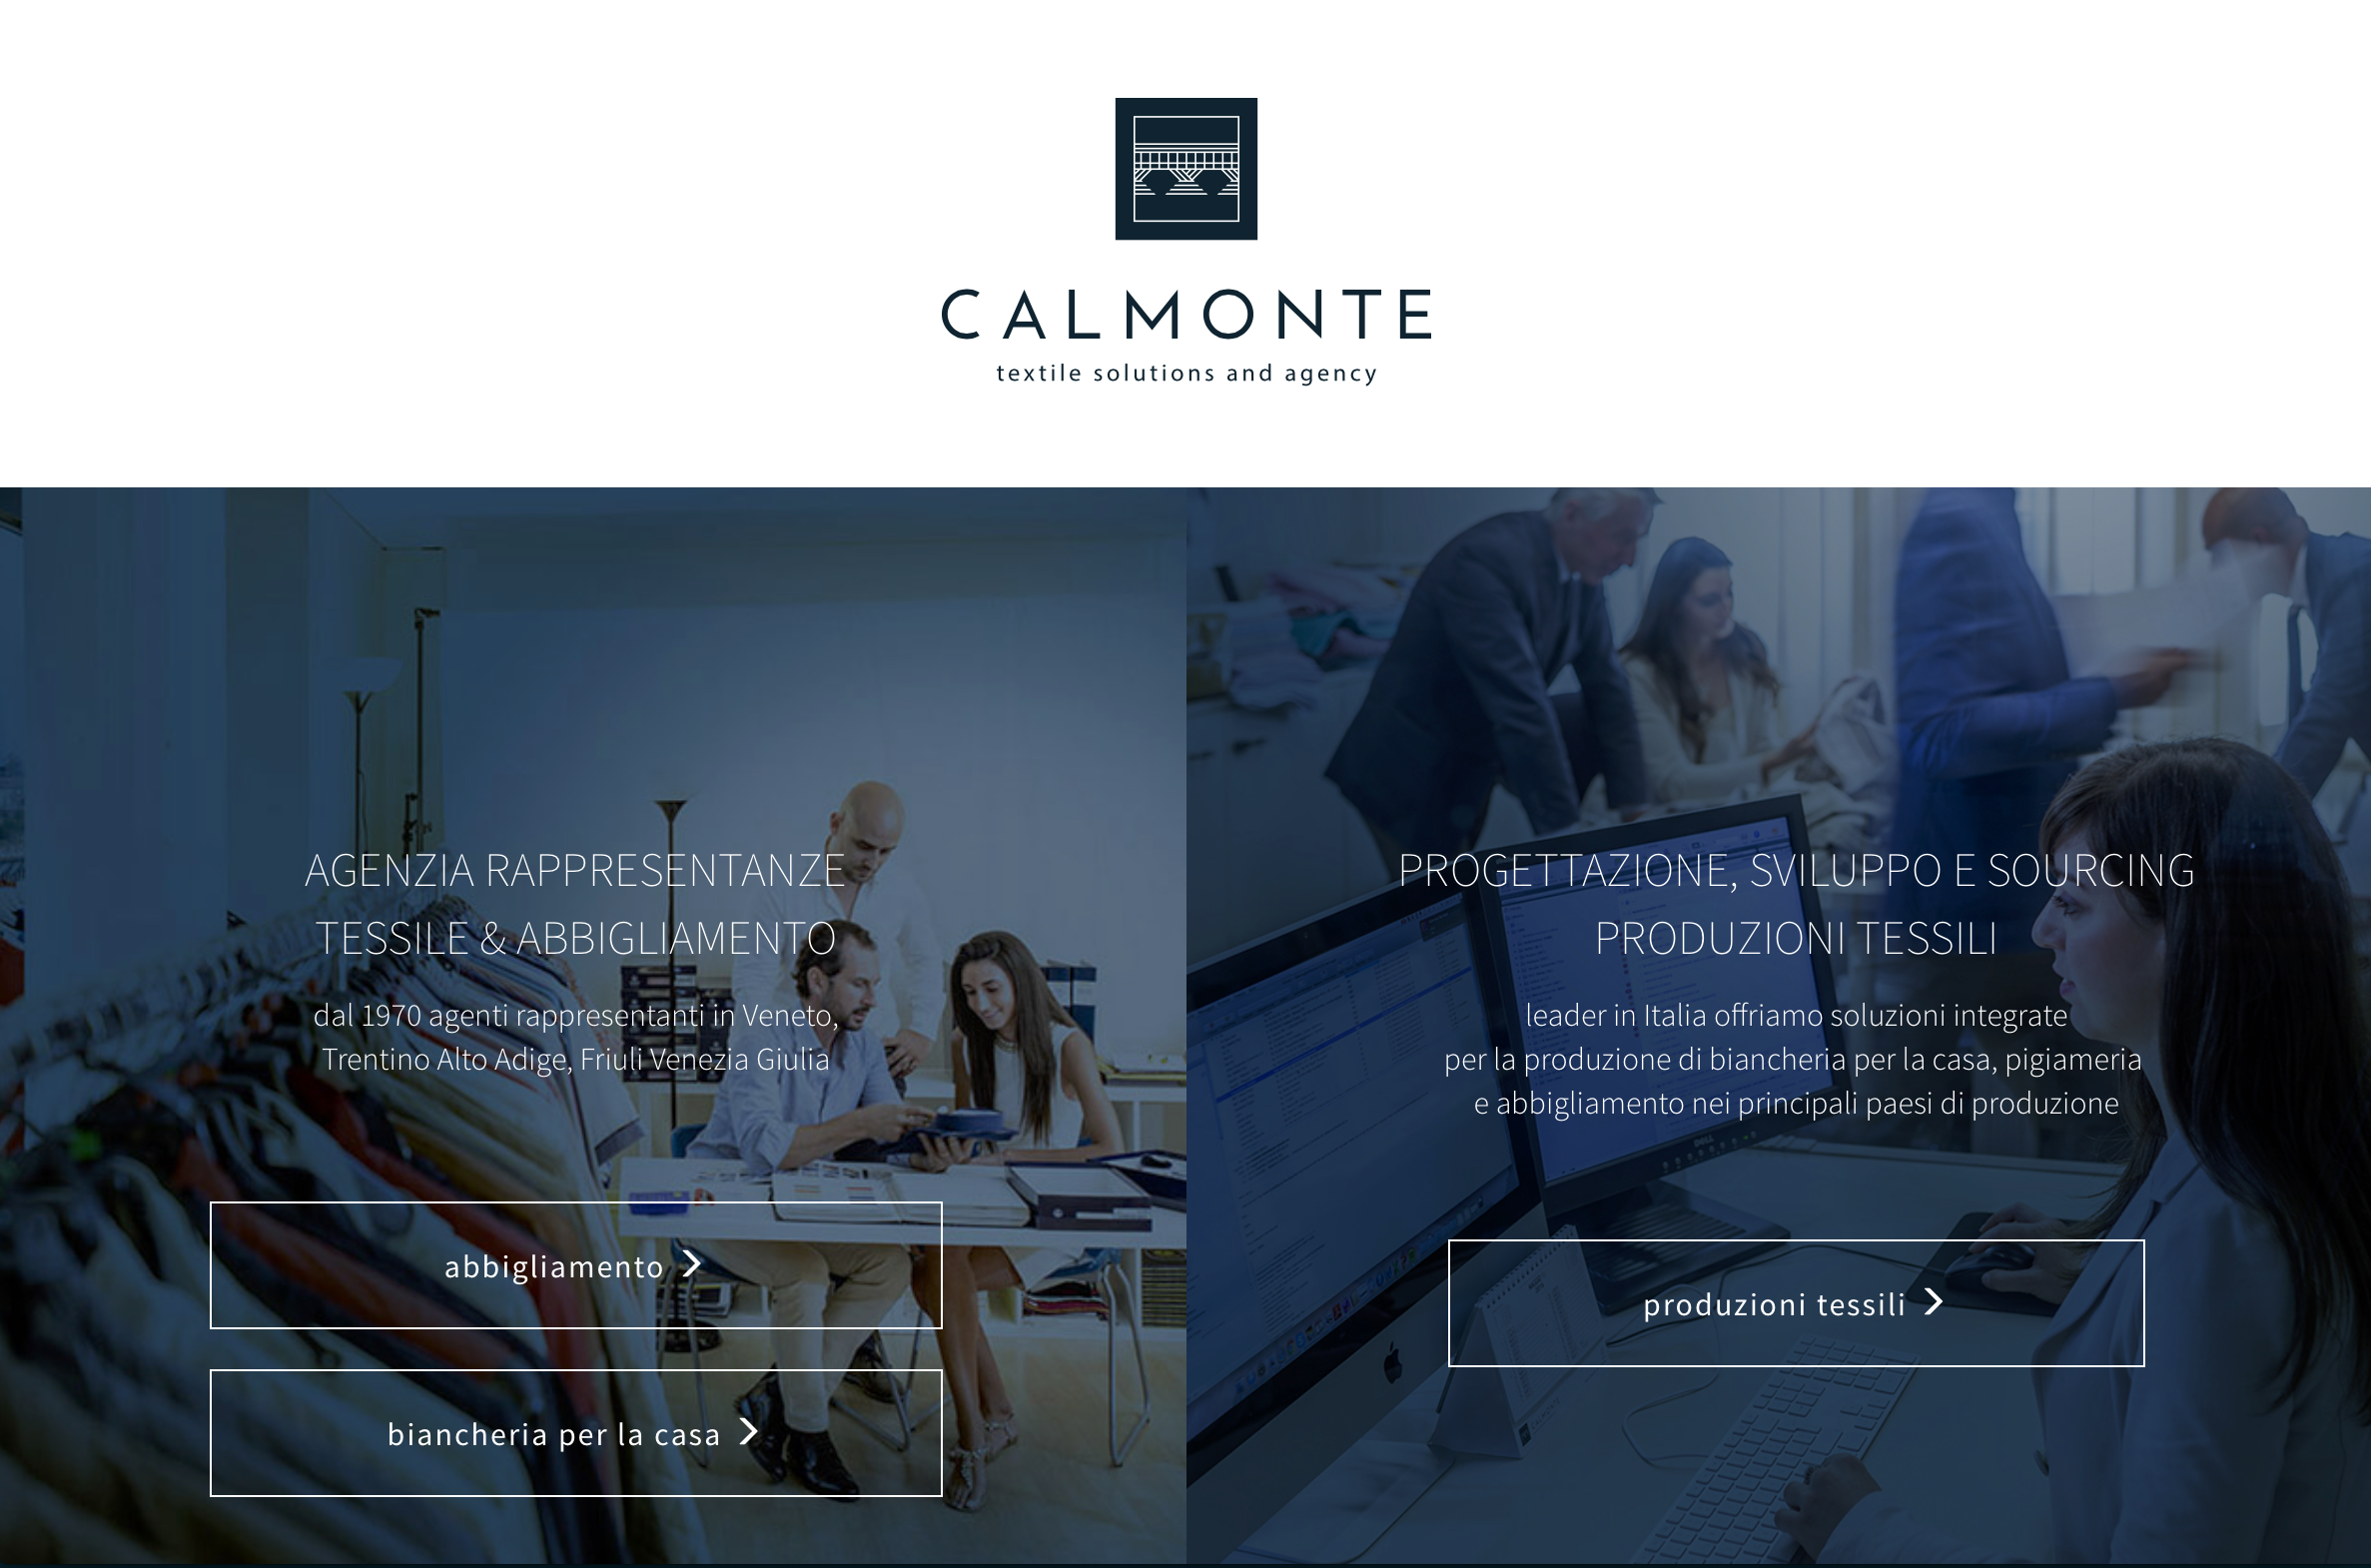 Say Hello to the new Calmonte website!